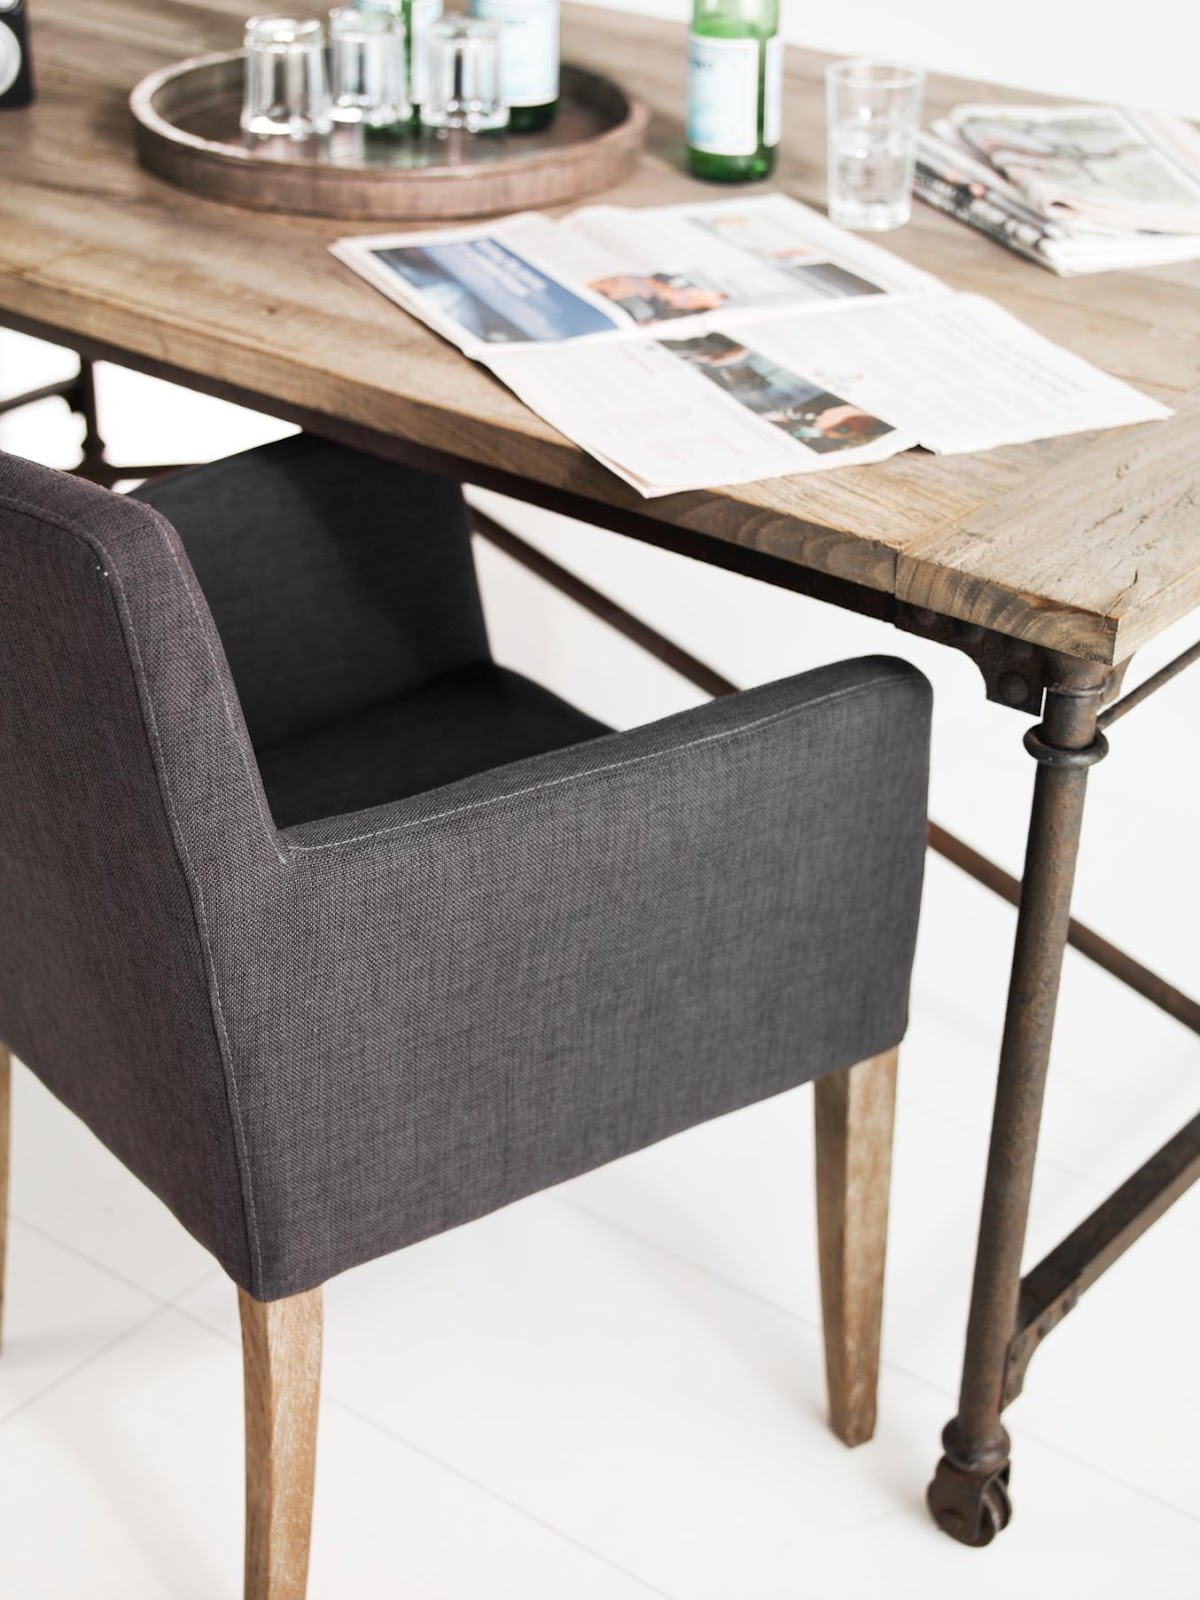 ... on Pinterest Dining chairs, Leather dining chairs and Dining tables